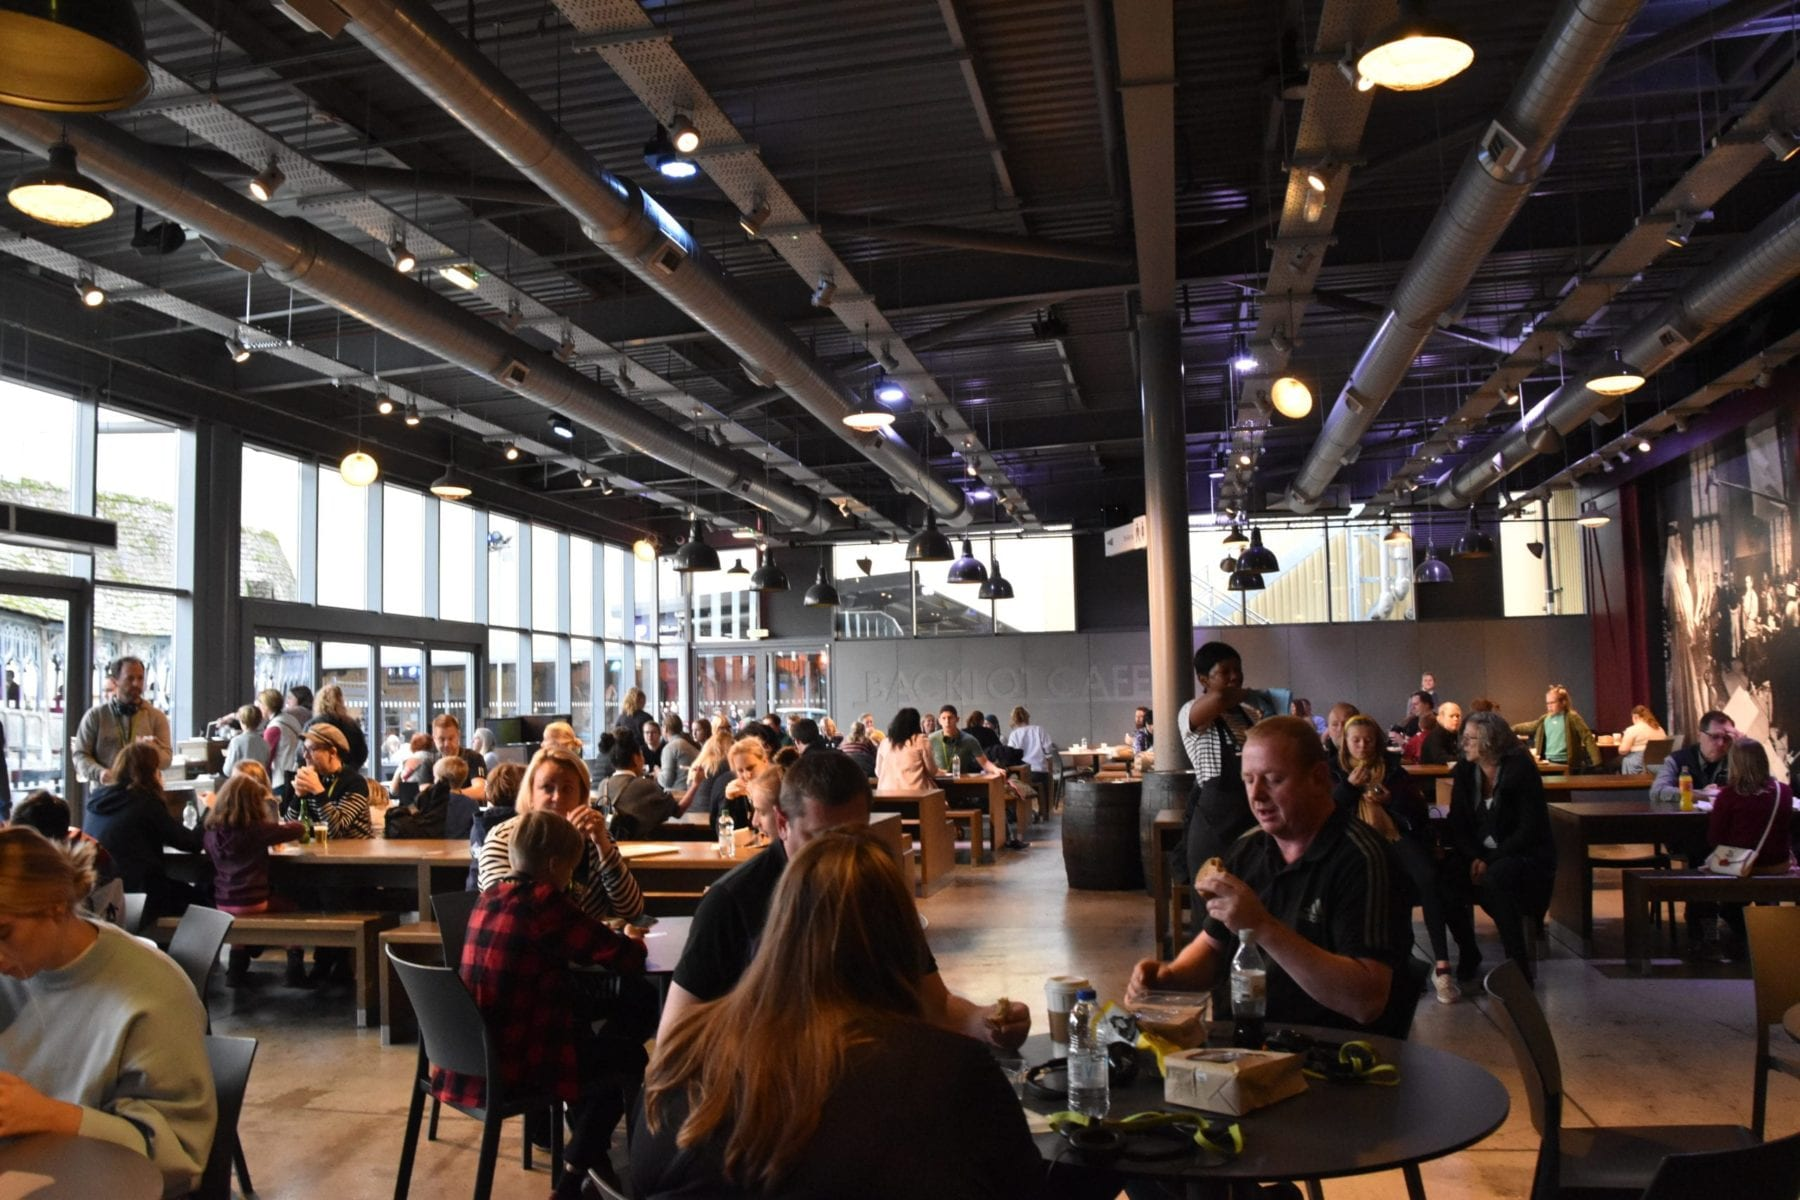 Dining at Harry Potter Studios London